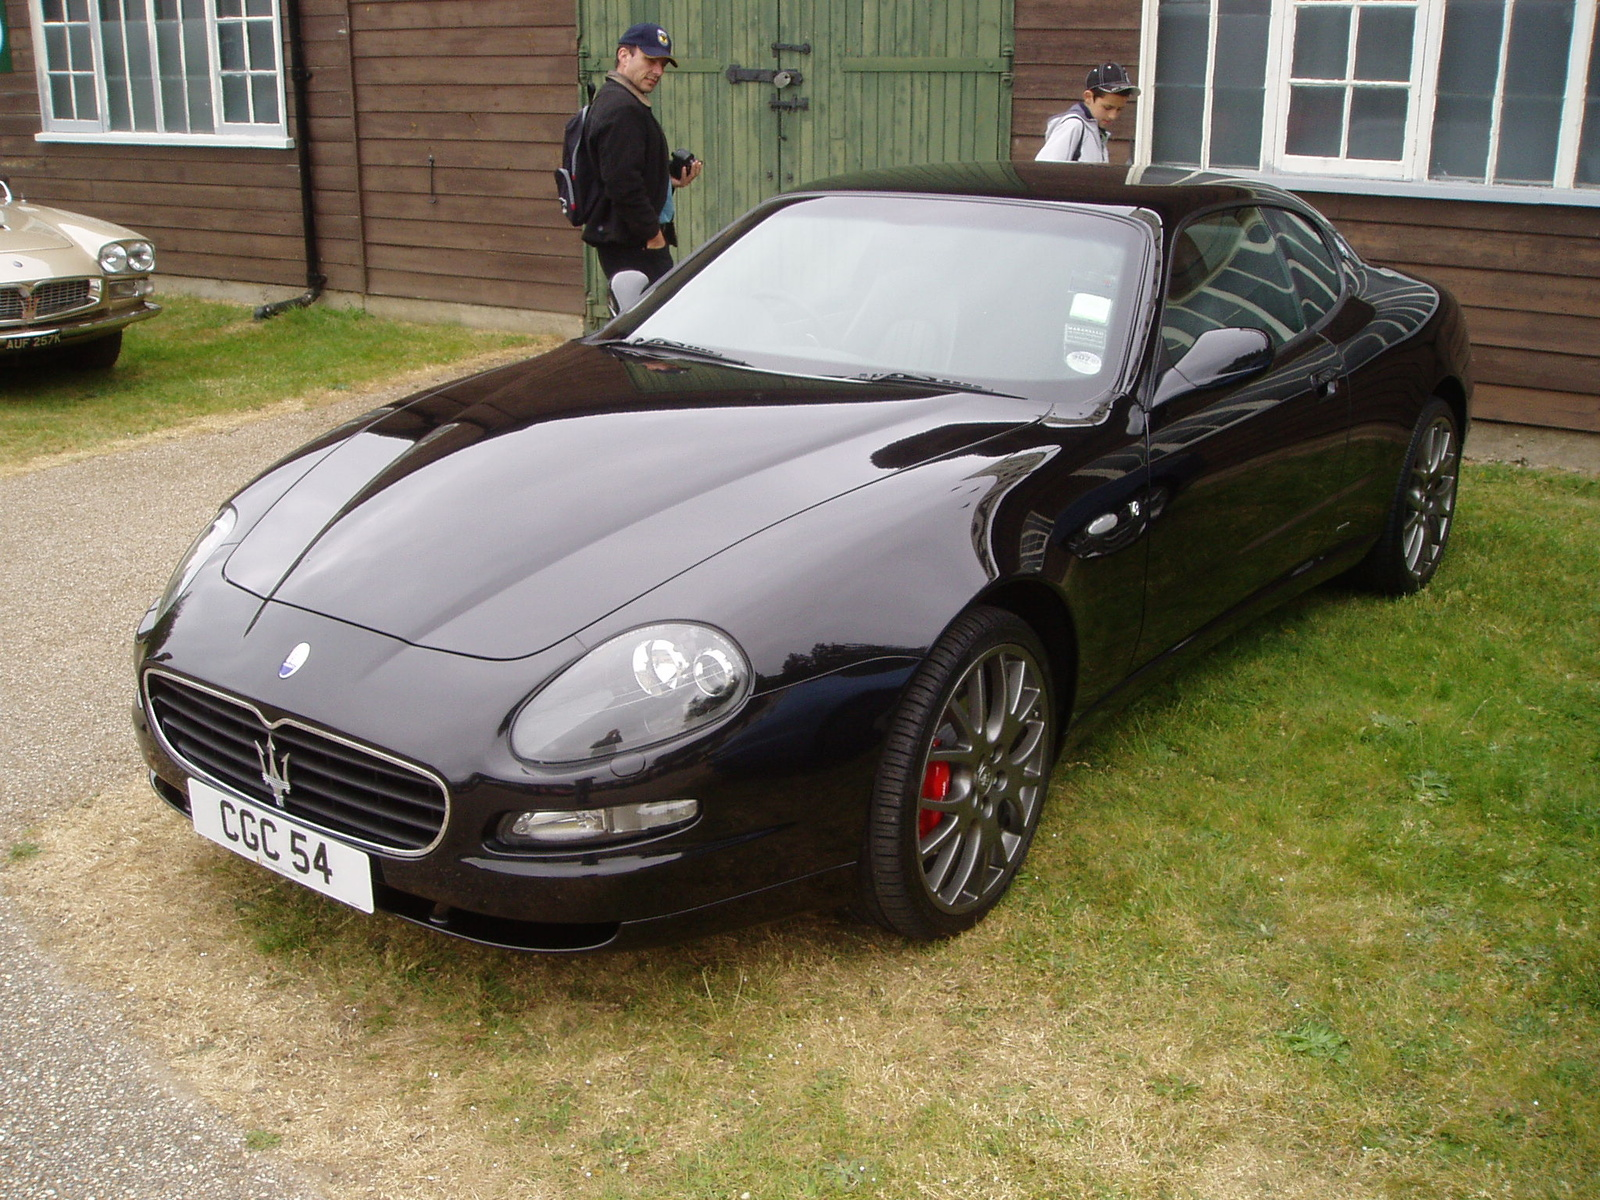 2006 Maserati Coupe - Other Pictures - 2006 Maserati Coupe ...